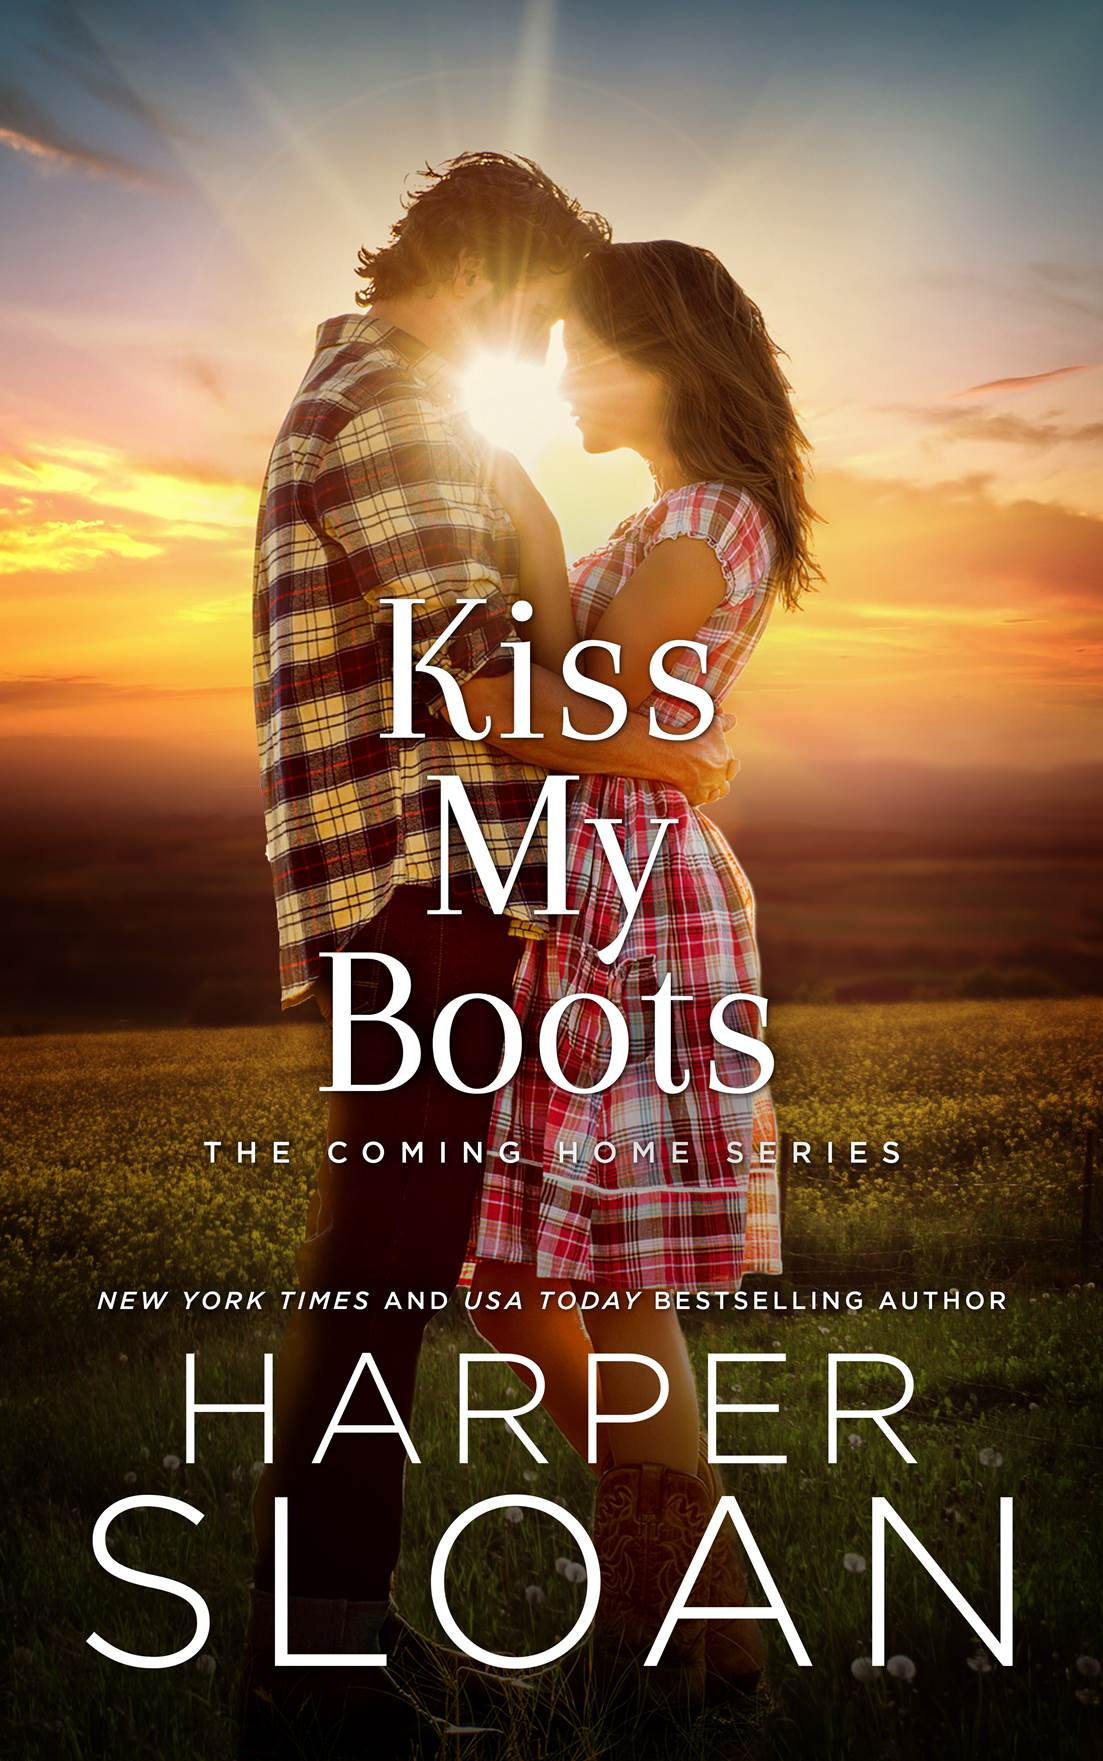 KISS MY BOOTS ~By Harper Sloan   In this second of the sultry, Western-set Coming Home series from   New York Times  bestselling author Harper Sloan, Quinn Davis might finally have a shot at her own happily-ever-after—but will she let love in, or will she tell it to go ahead and kiss her boots?    Quinn Davis prefers to live her life quietly. She's the stereotypical tomboy with two overprotective big brothers who have always been there to protect her, especially from devilishly handsome cowboys with silver tongues. That is, until Tate Montgomery comes riding into town. Their first meeting, however, is far from something out of a fairy tale and only further convinces Quinn that men aren't worth her time.    The only place Tate Montgomery ever truly felt at home growing up was during the long, sweltering summer months he spent at his Gram and Paw's farm in Pine Oak, Texas. Now, Tate has returned to his childhood sanctuary seeking a fresh start—but if he's being entirely honest, he's not just back for the wranglers and Stetsons. During those summers, Quinn was a friend-turned-young-love who Tate lost when life threw him a curveball and he cut all ties to his past; but all it takes is one glance at the raven-haired beauty he did his best to forget for him to realize just how much he's been missing….    Amazon US  ~ Amazon Paperback    Amazon UK  ~ Amazon AU  ~  Amazon CA     B&N  ~ Kobo  ~  iBooks  ~ BAM  ~  Google